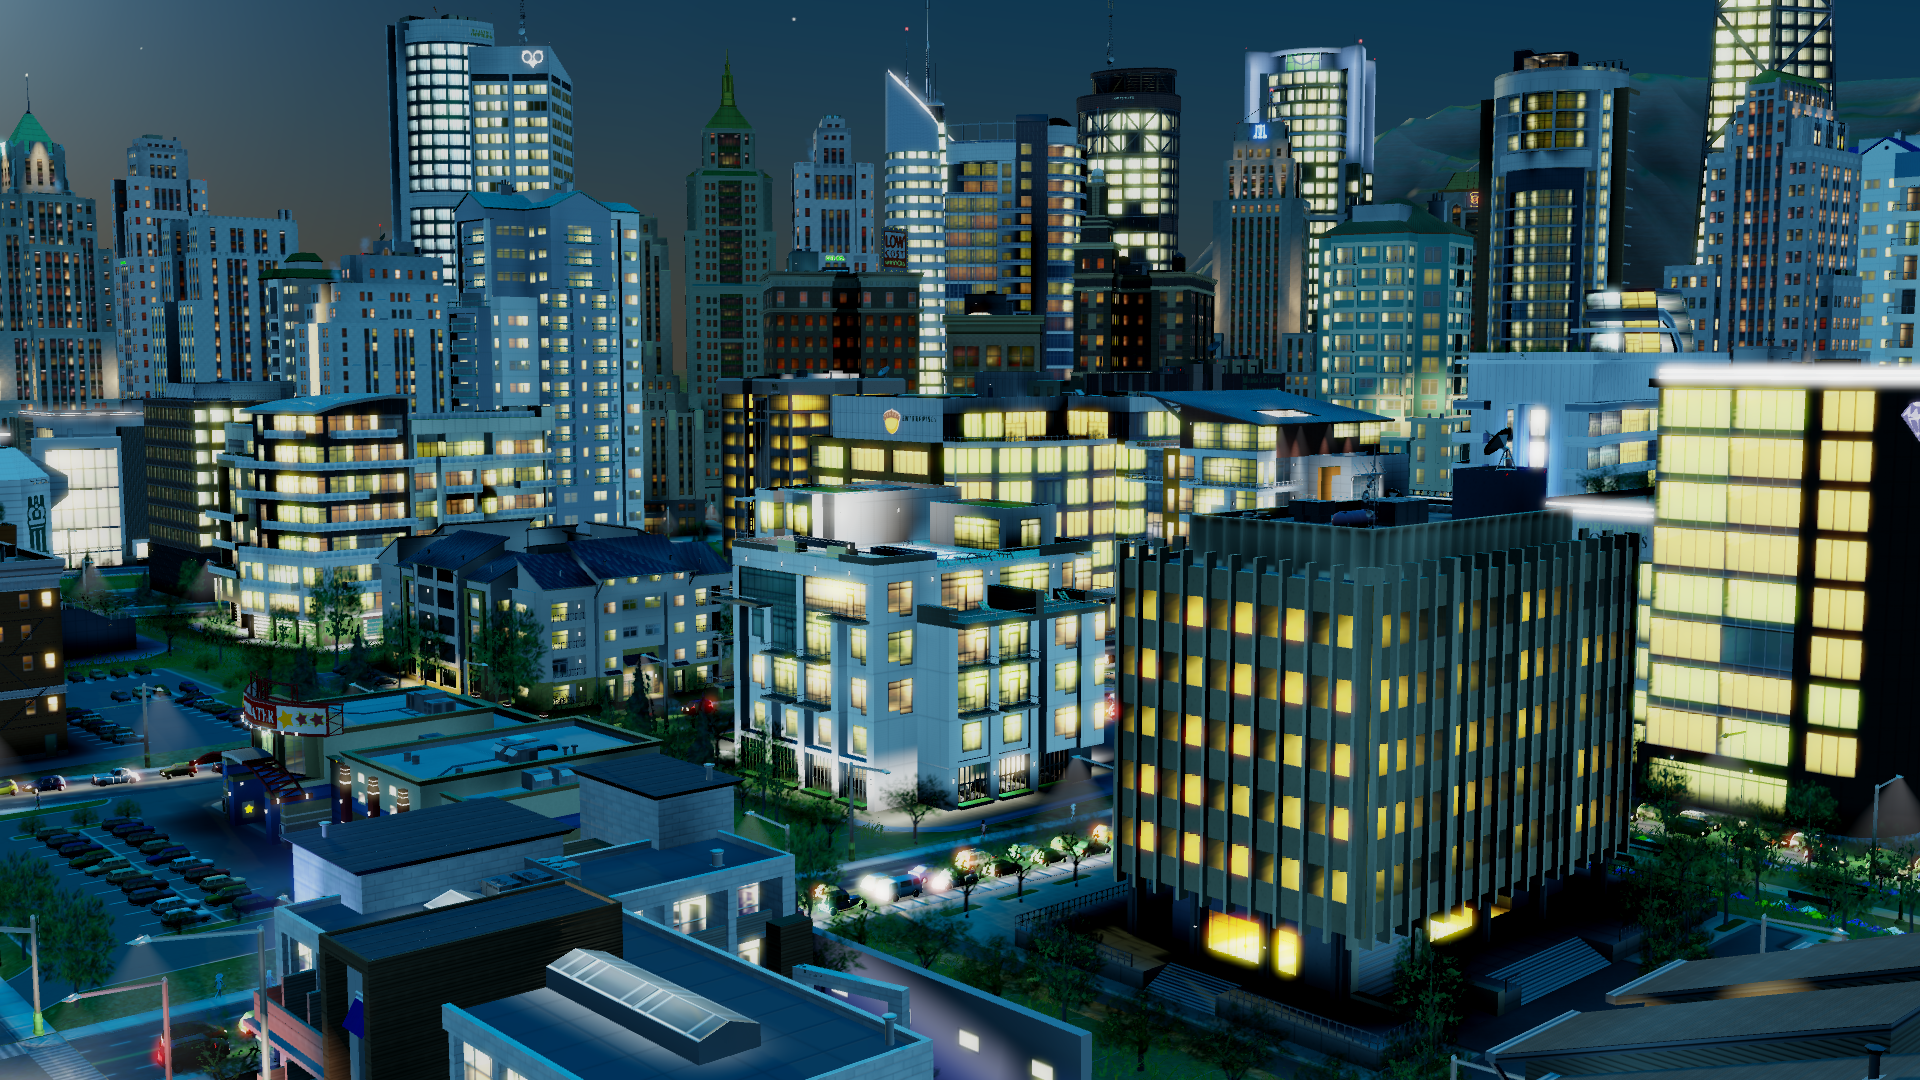 SimCity Nightime Skyline